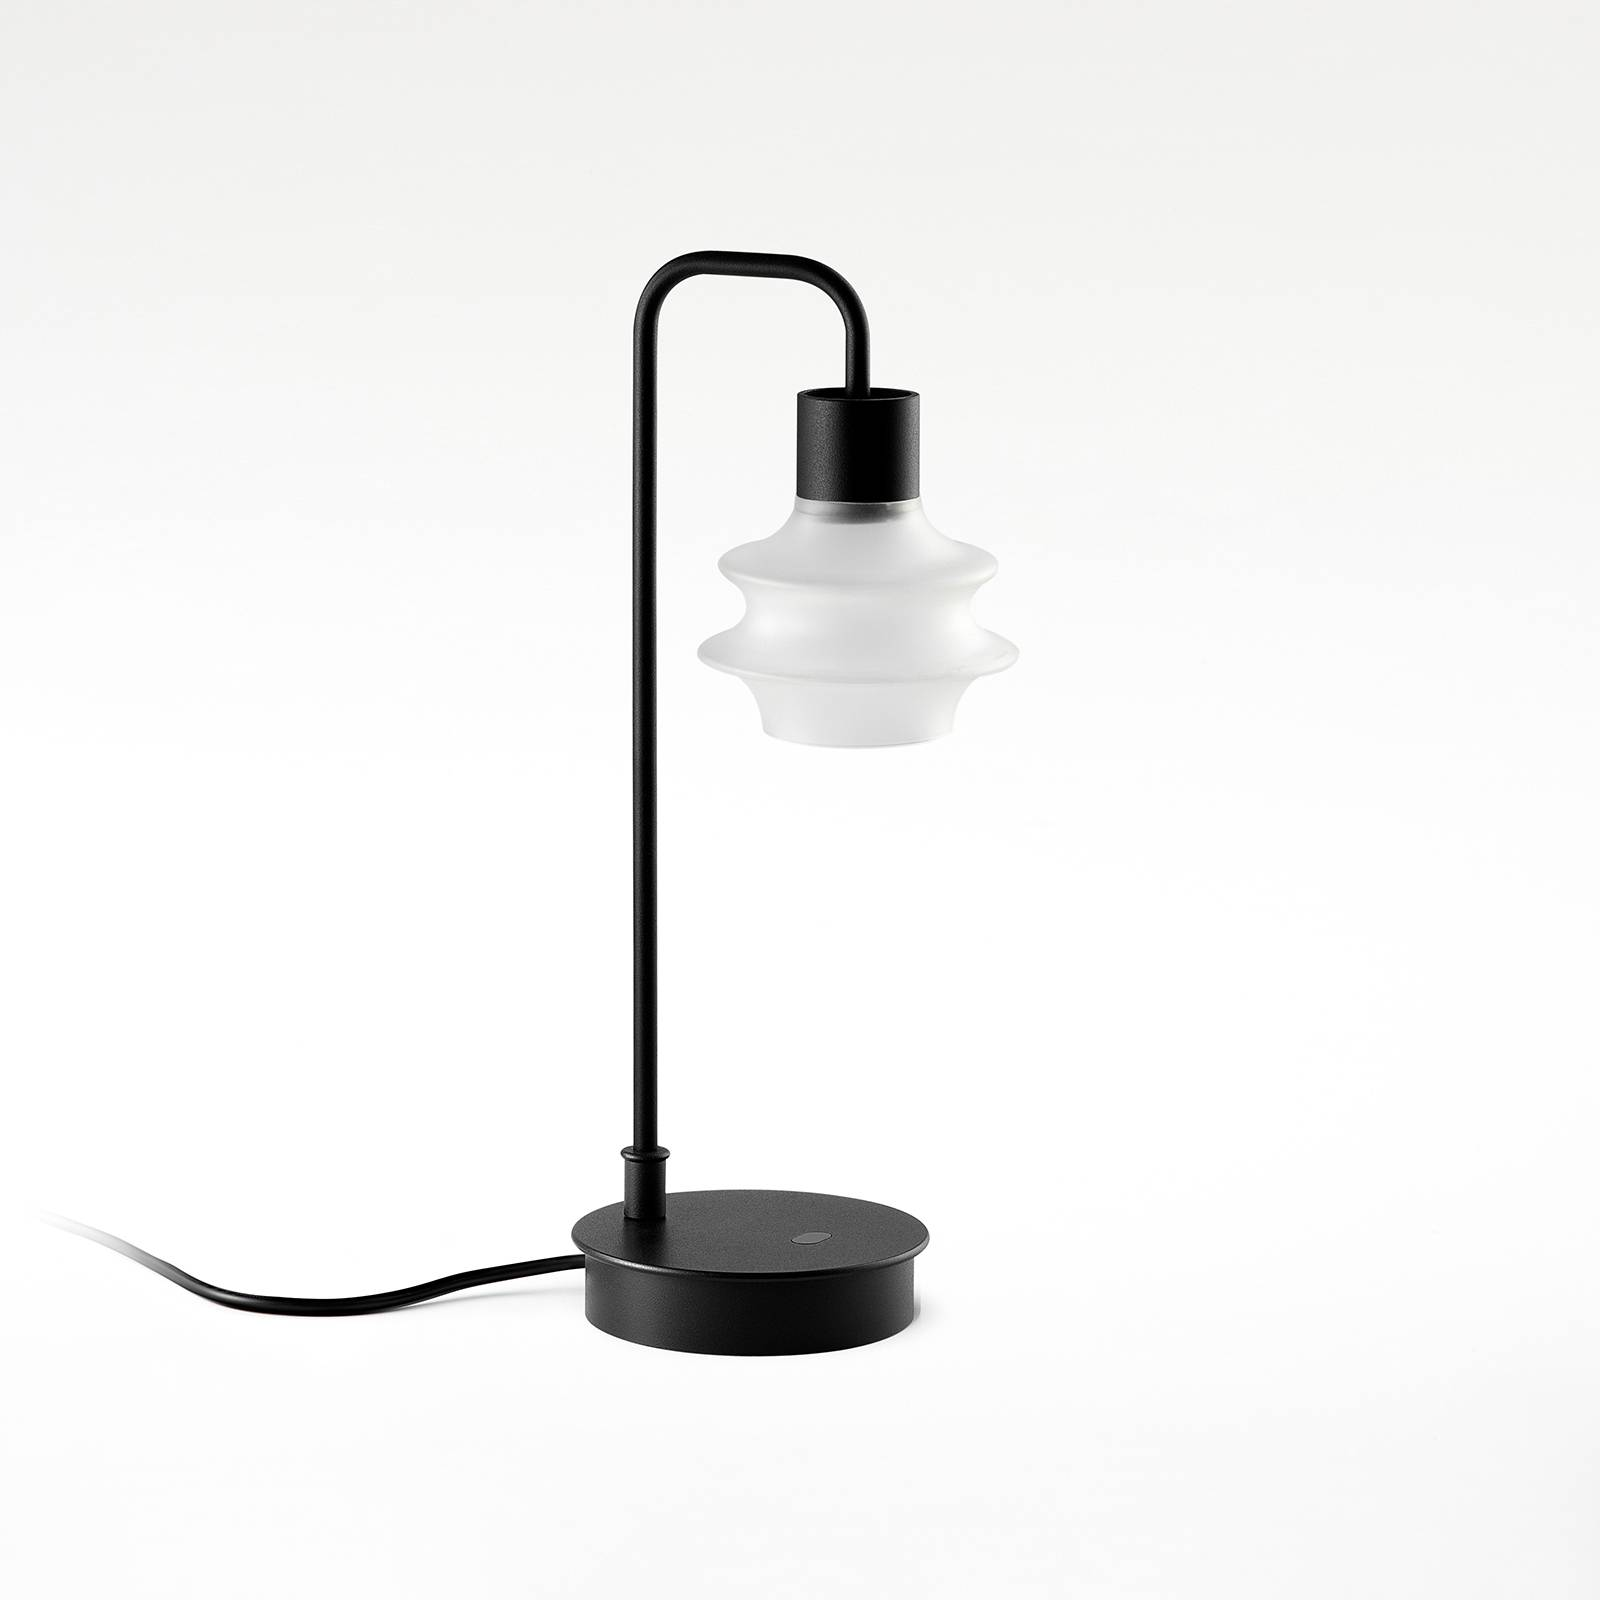 Bover Drop M/36 lampe à poser LED mate-blanche